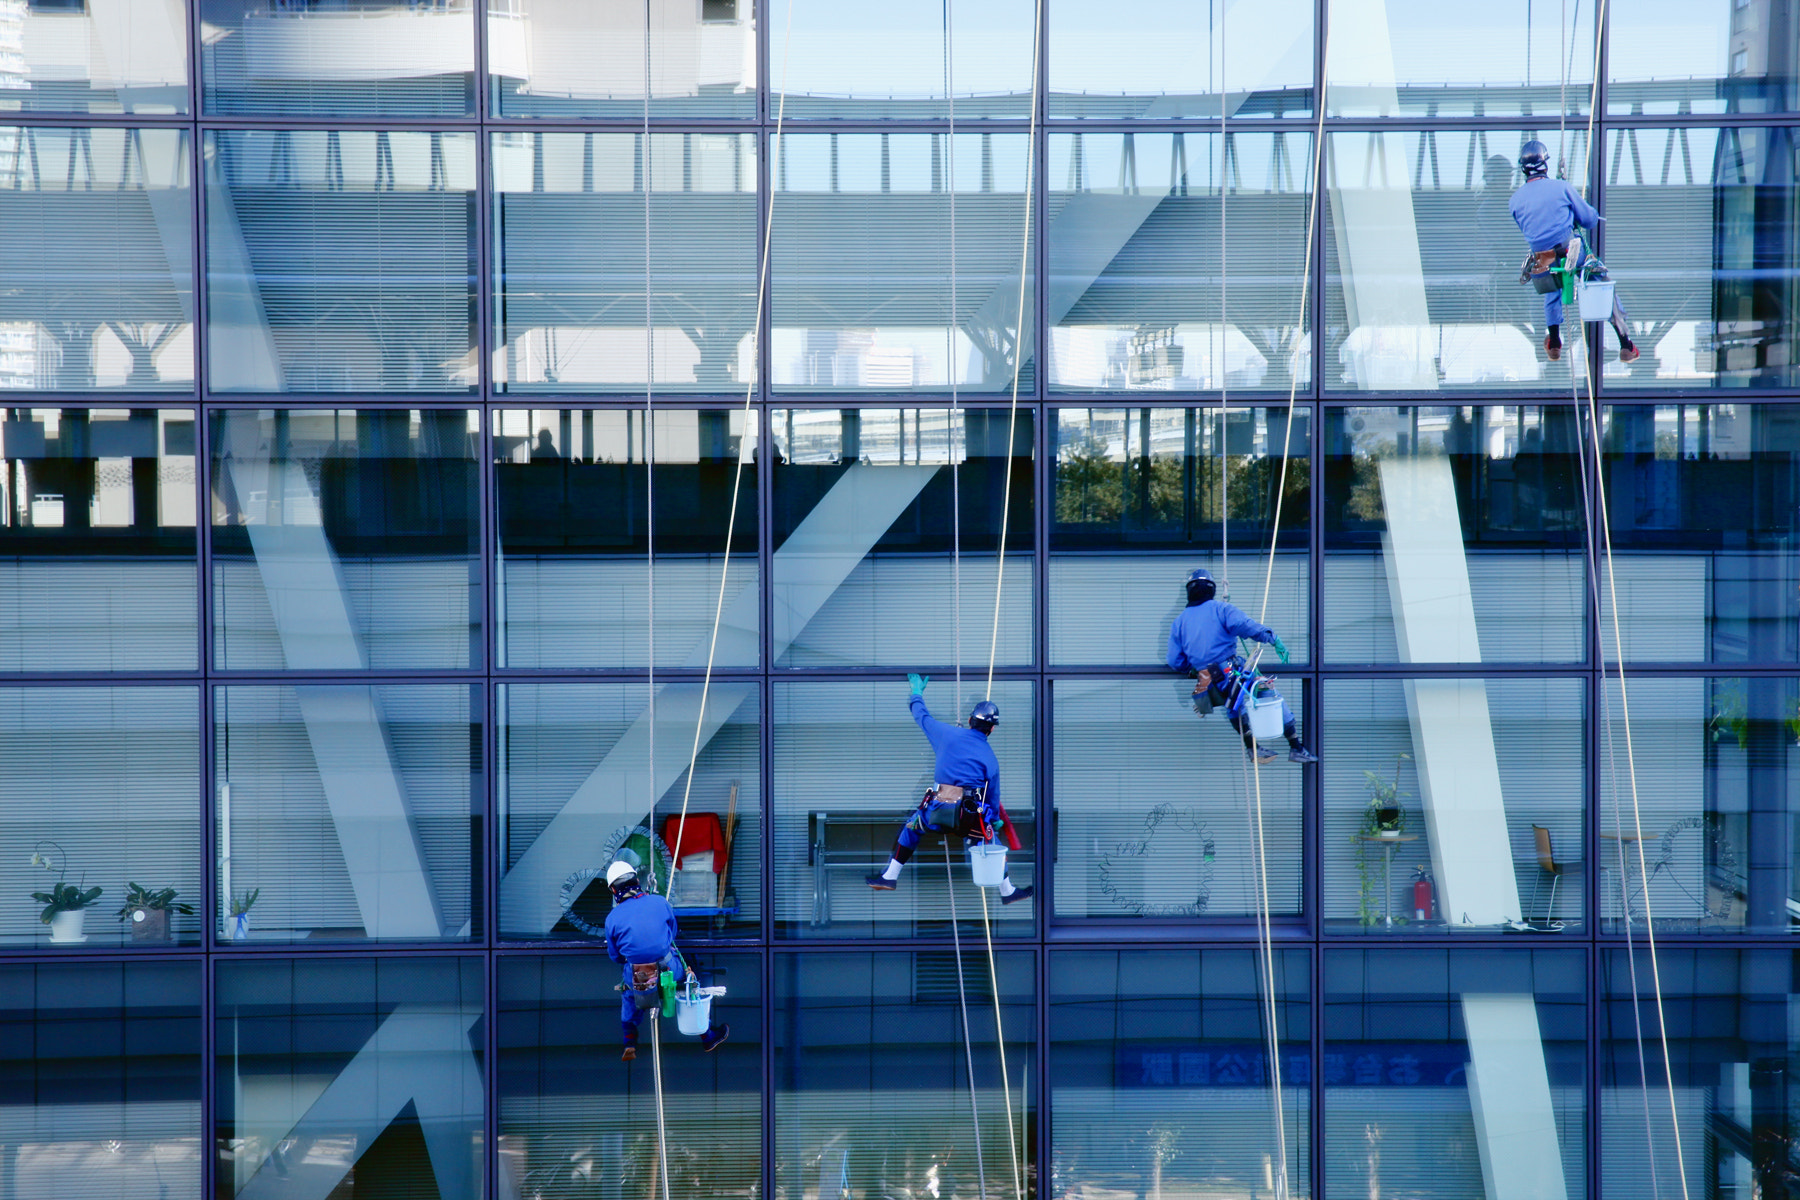 Photograph Men at Work by Rio Akasaka on 500px